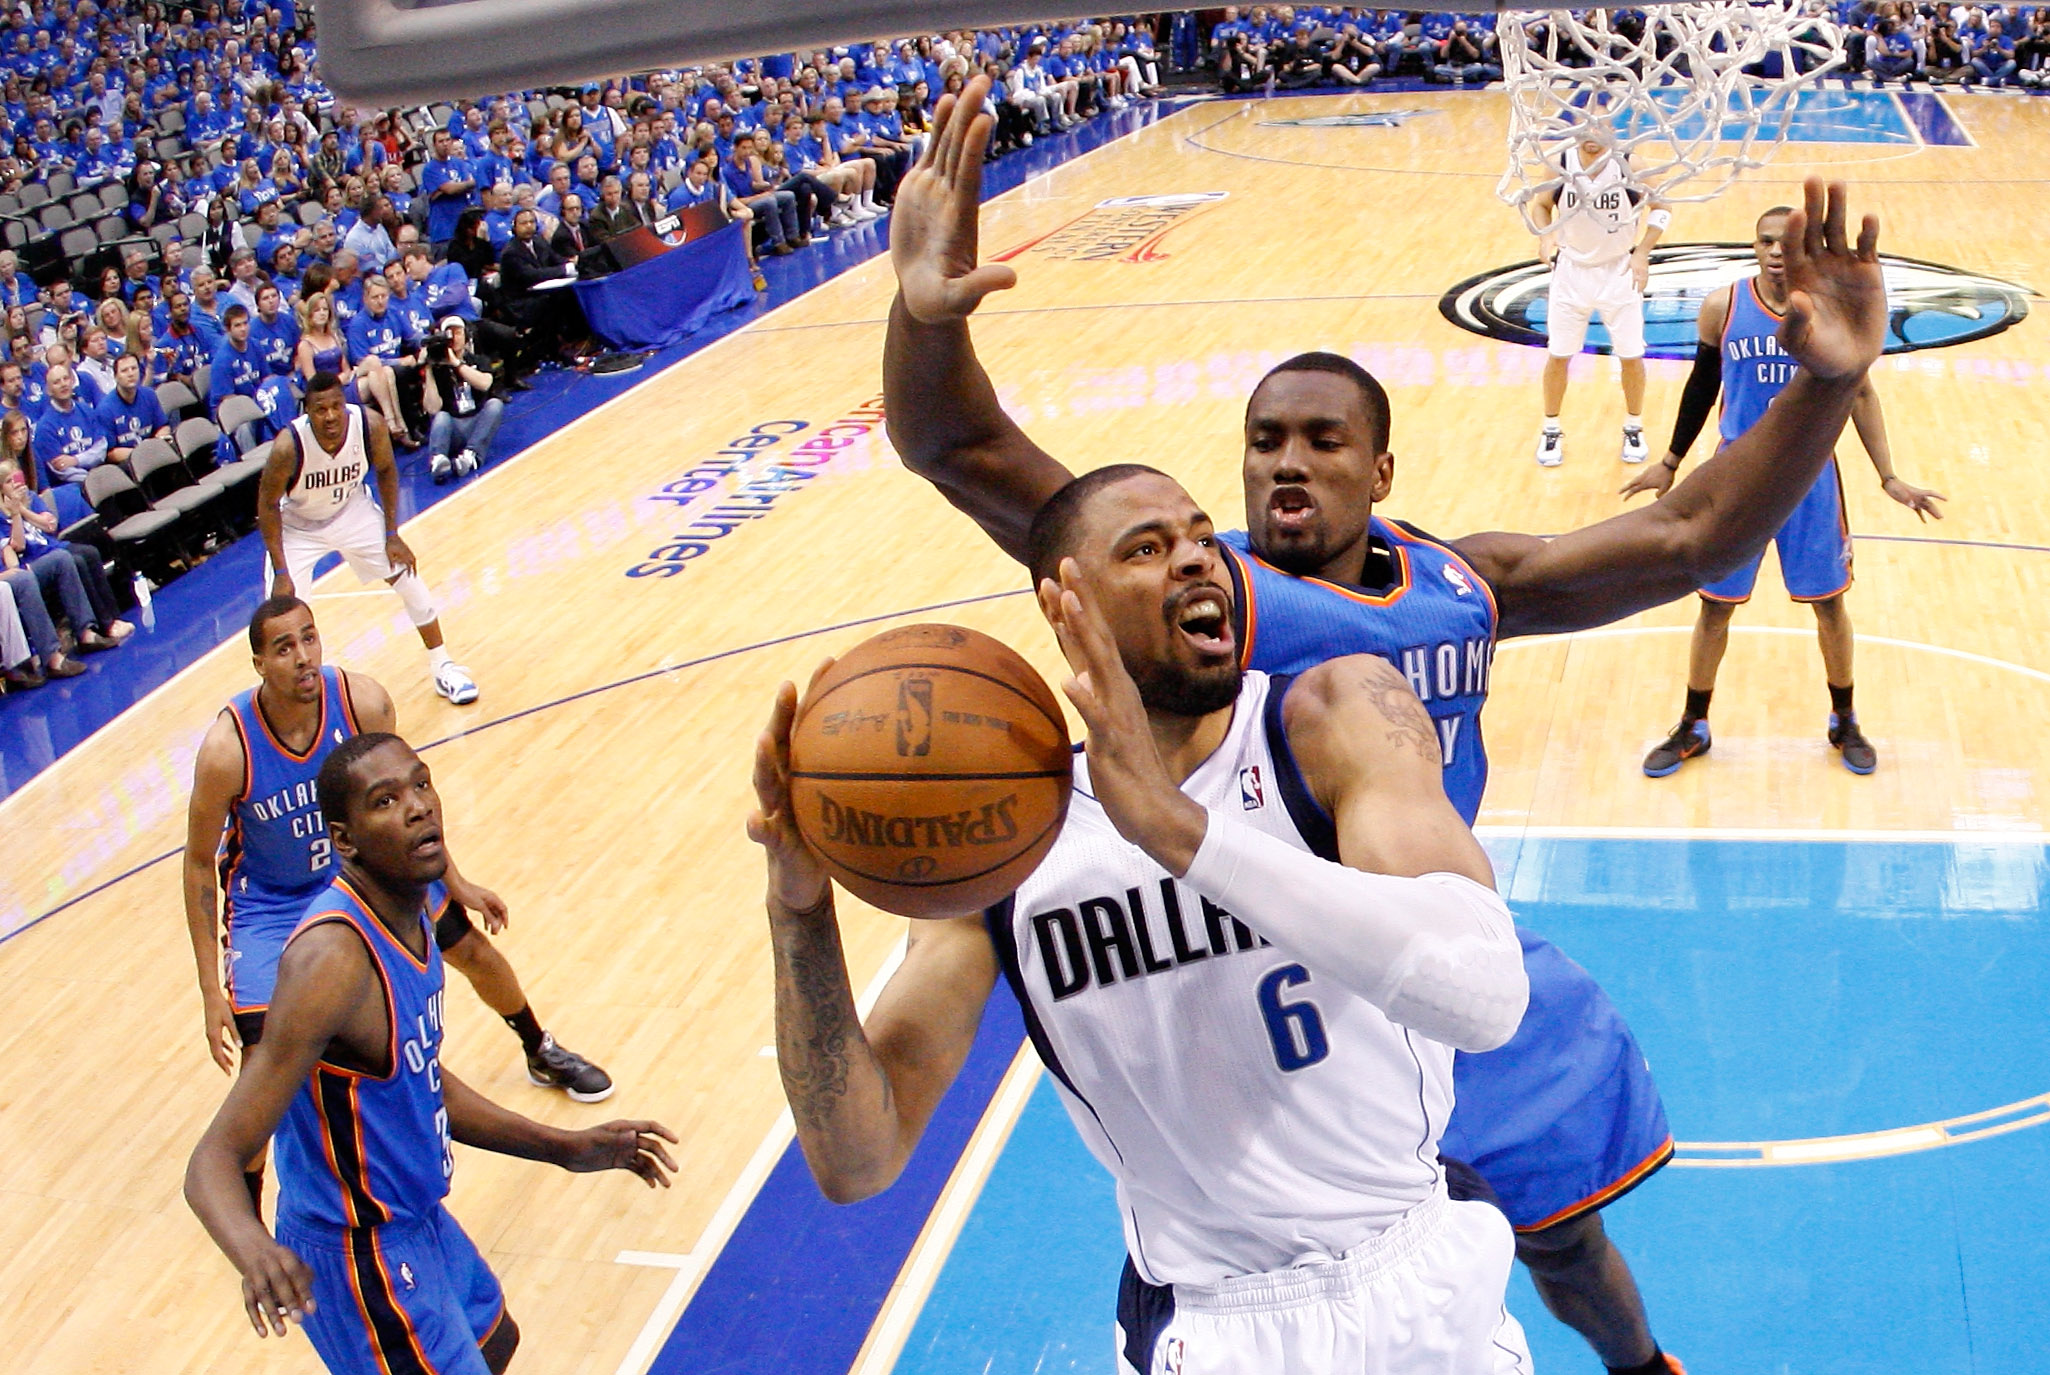 DALLAS, TX - MAY 25:  Tyson Chandler #6 of the Dallas Mavericks looks to go up for a shot in front of Serge Ibaka #9 of the Oklahoma City Thunder in the second half in Game Five of the Western Conference Finals during the 2011 NBA Playoffs at American Air